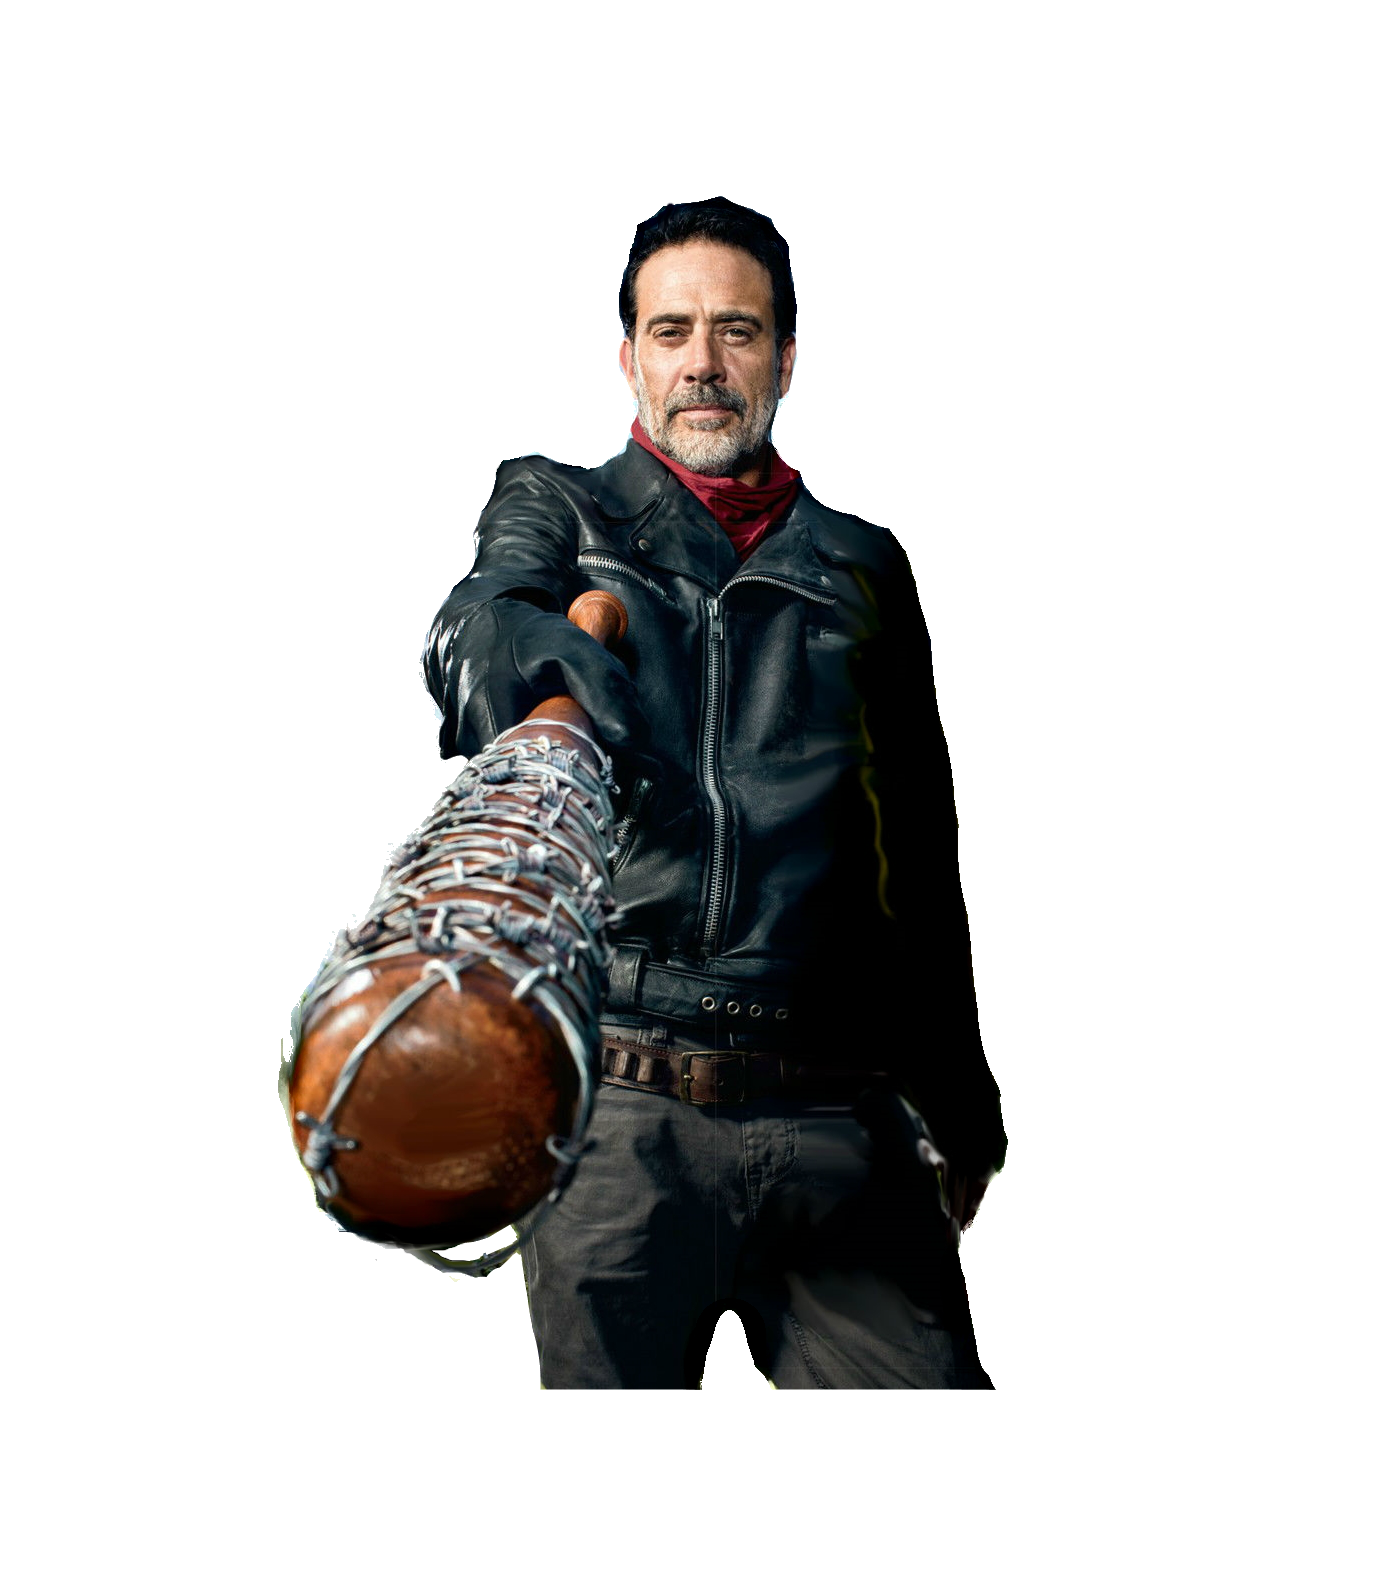 The Walking Dead PNG Images Transparent Free Download.